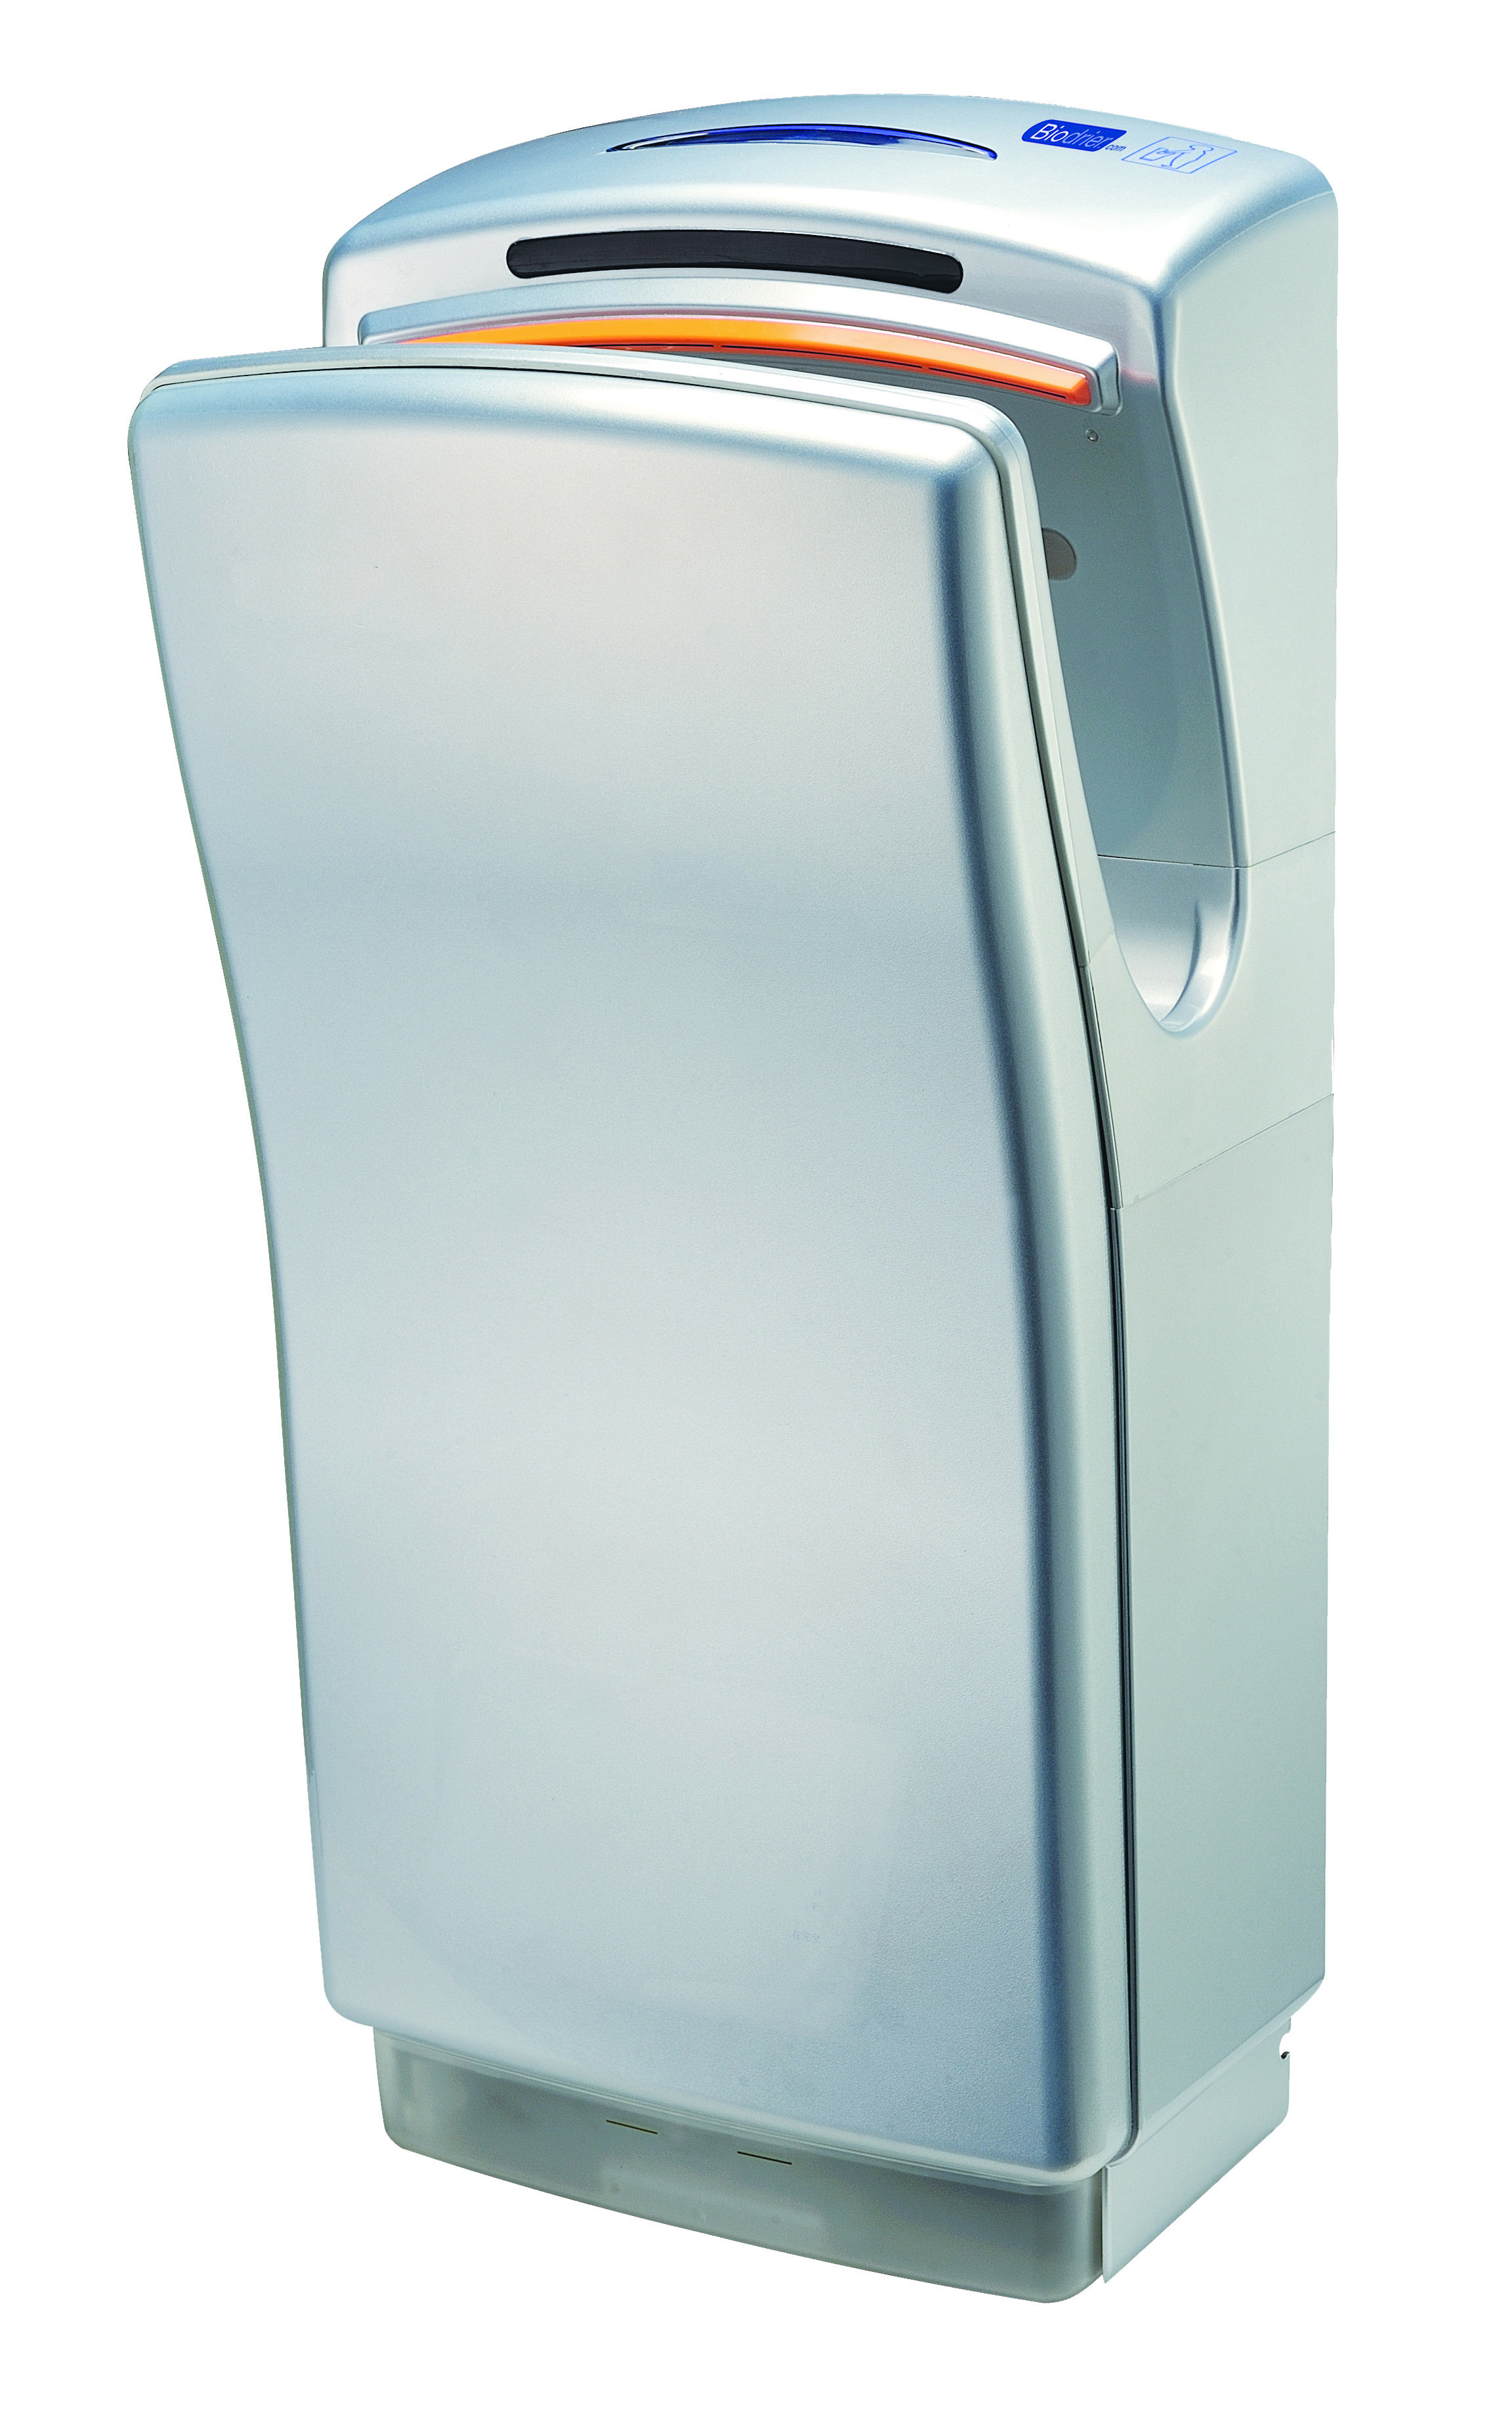 Bio Business Hand Dryers